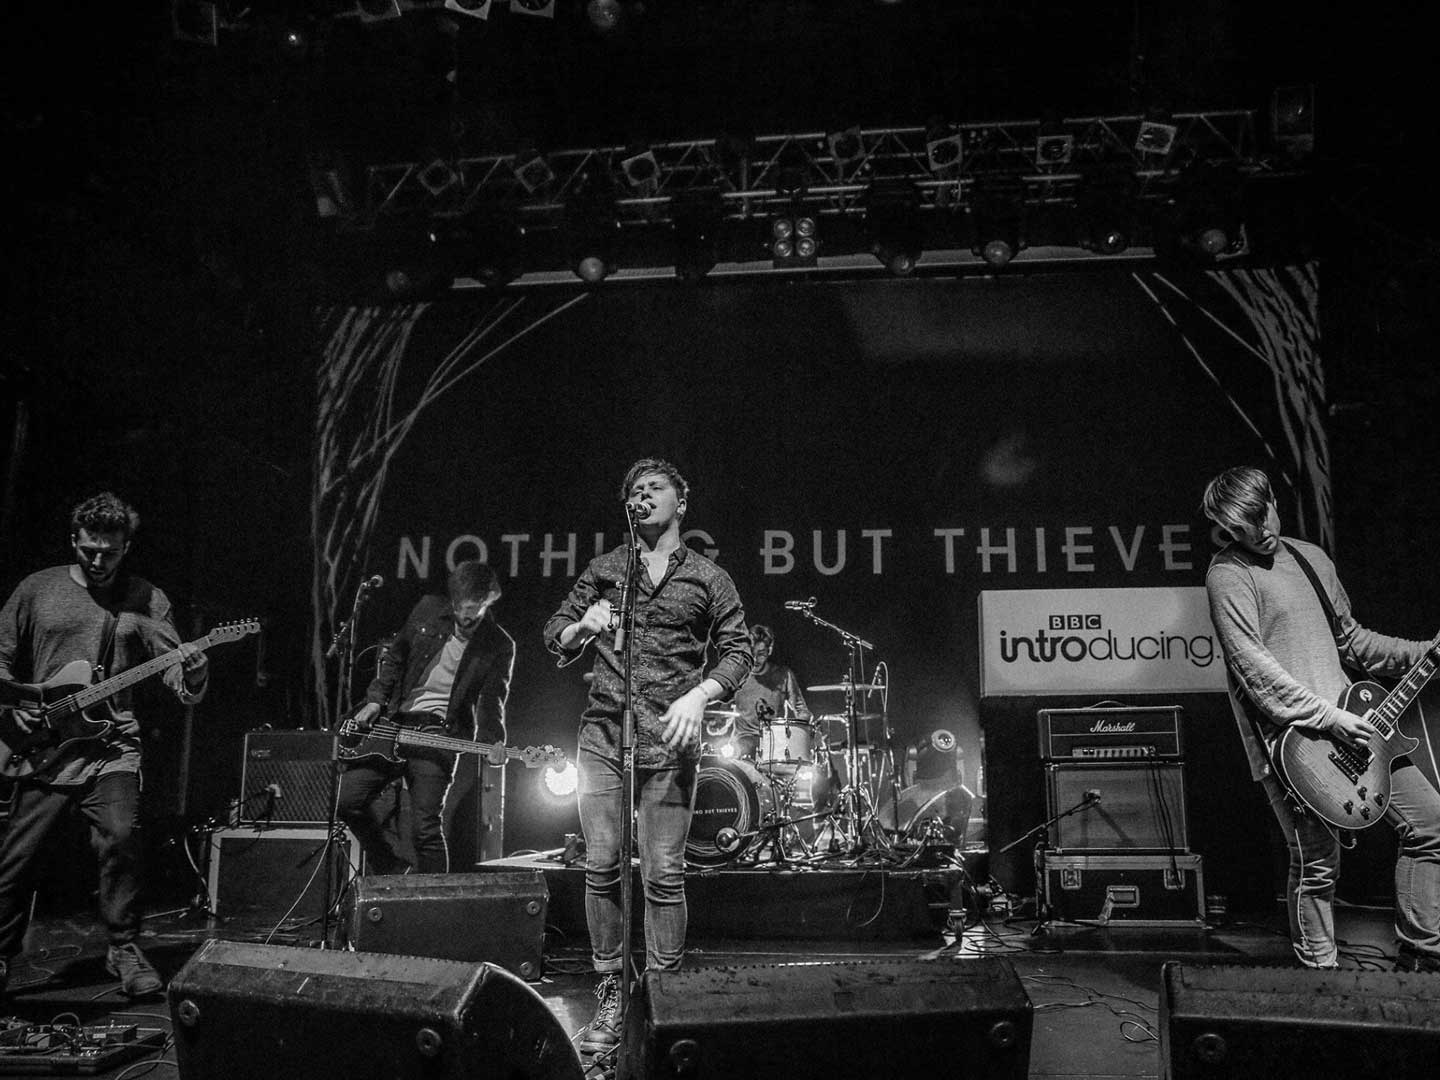 Nothing But Thieves performing live